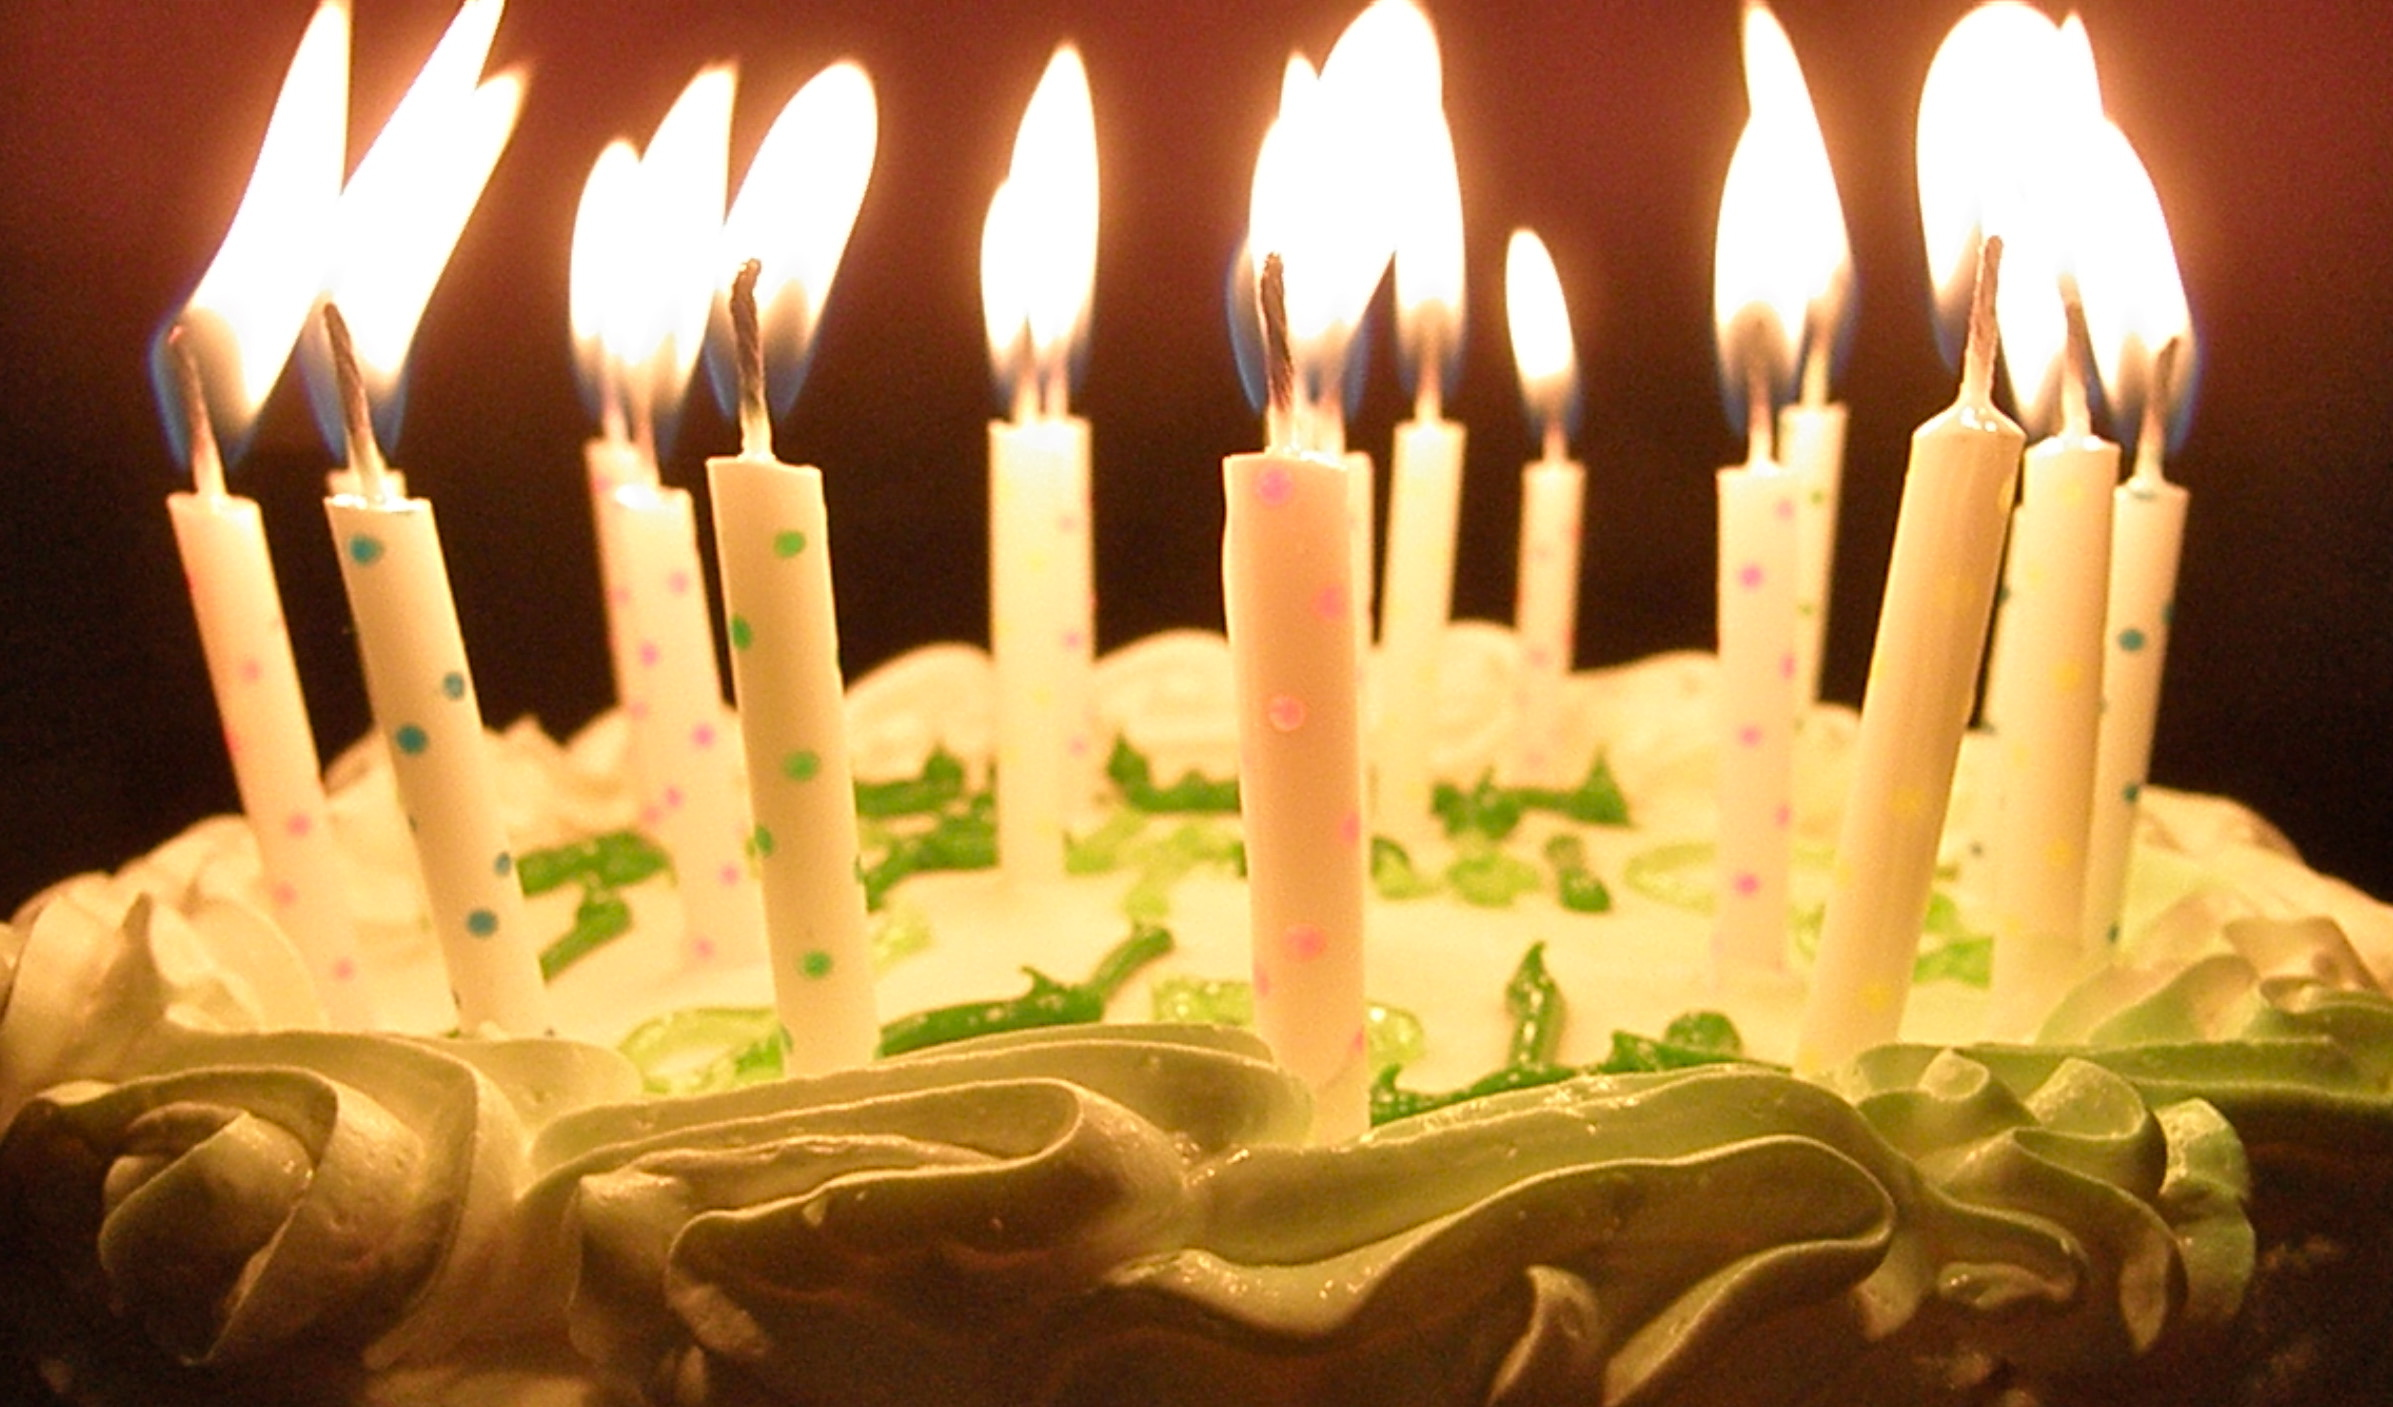 happy birthday wishes hd images free download ; happy-birthday-candles-hd-wallpapers-and-images-6